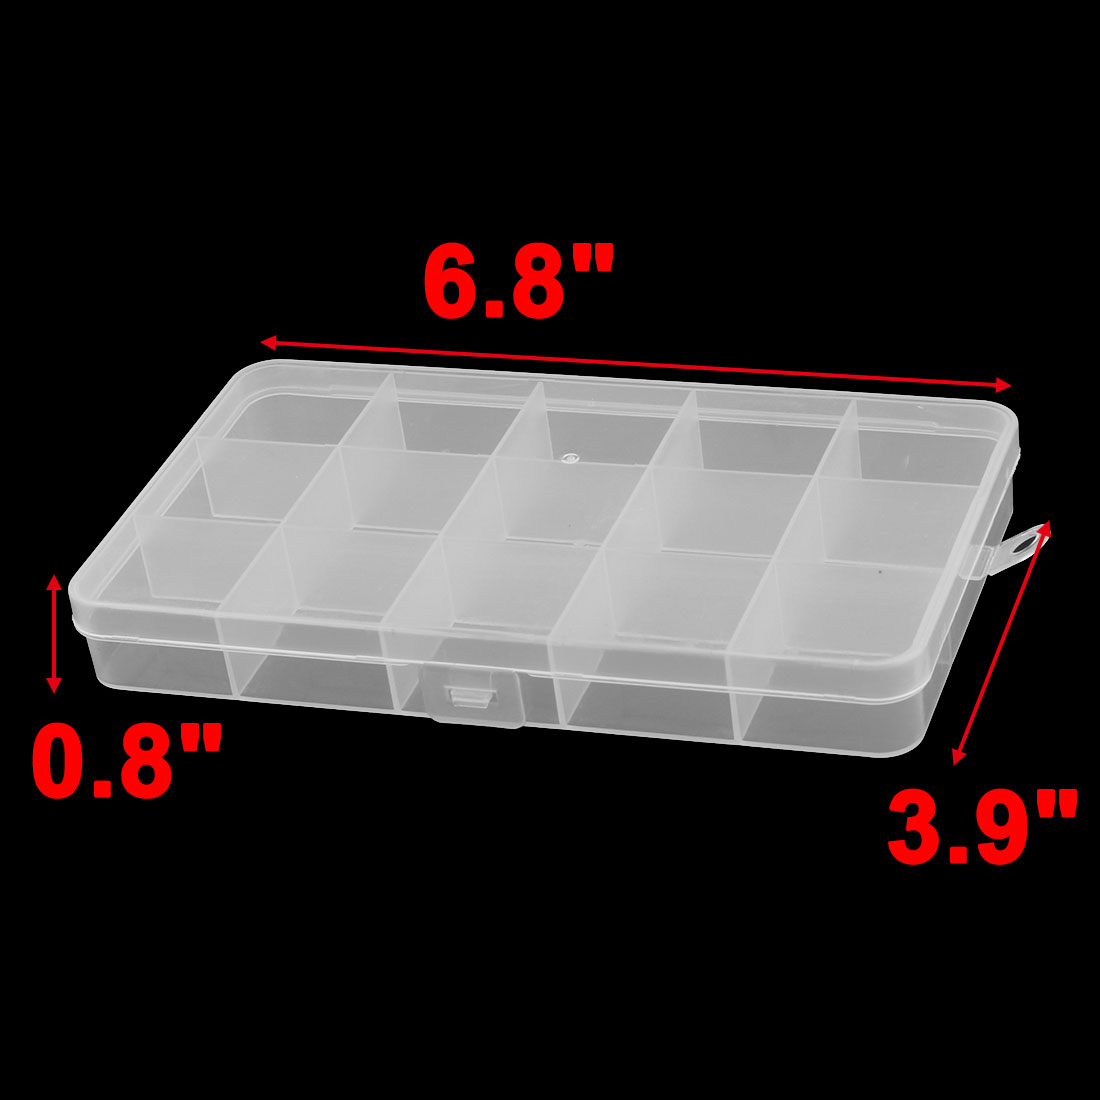 Household Office 15 Compartments Sundries Beads Capsule Storage Case Box 5 Pcs - image 2 of 4